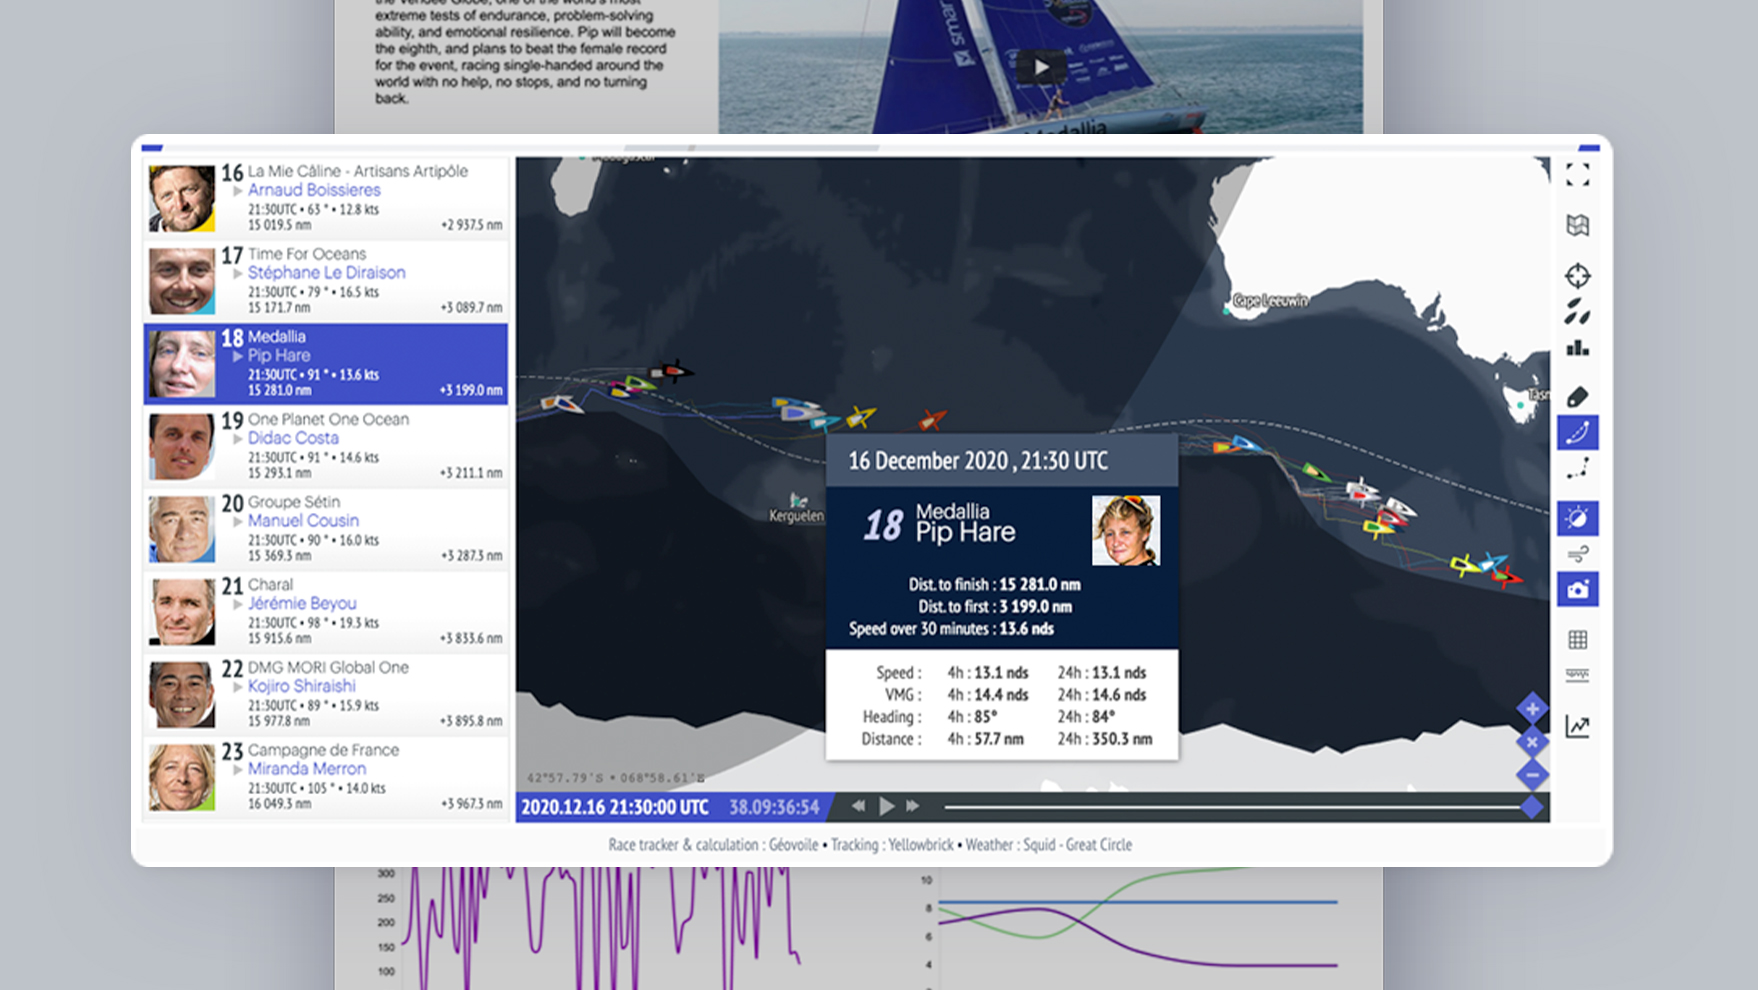 The Vendée Globe race map